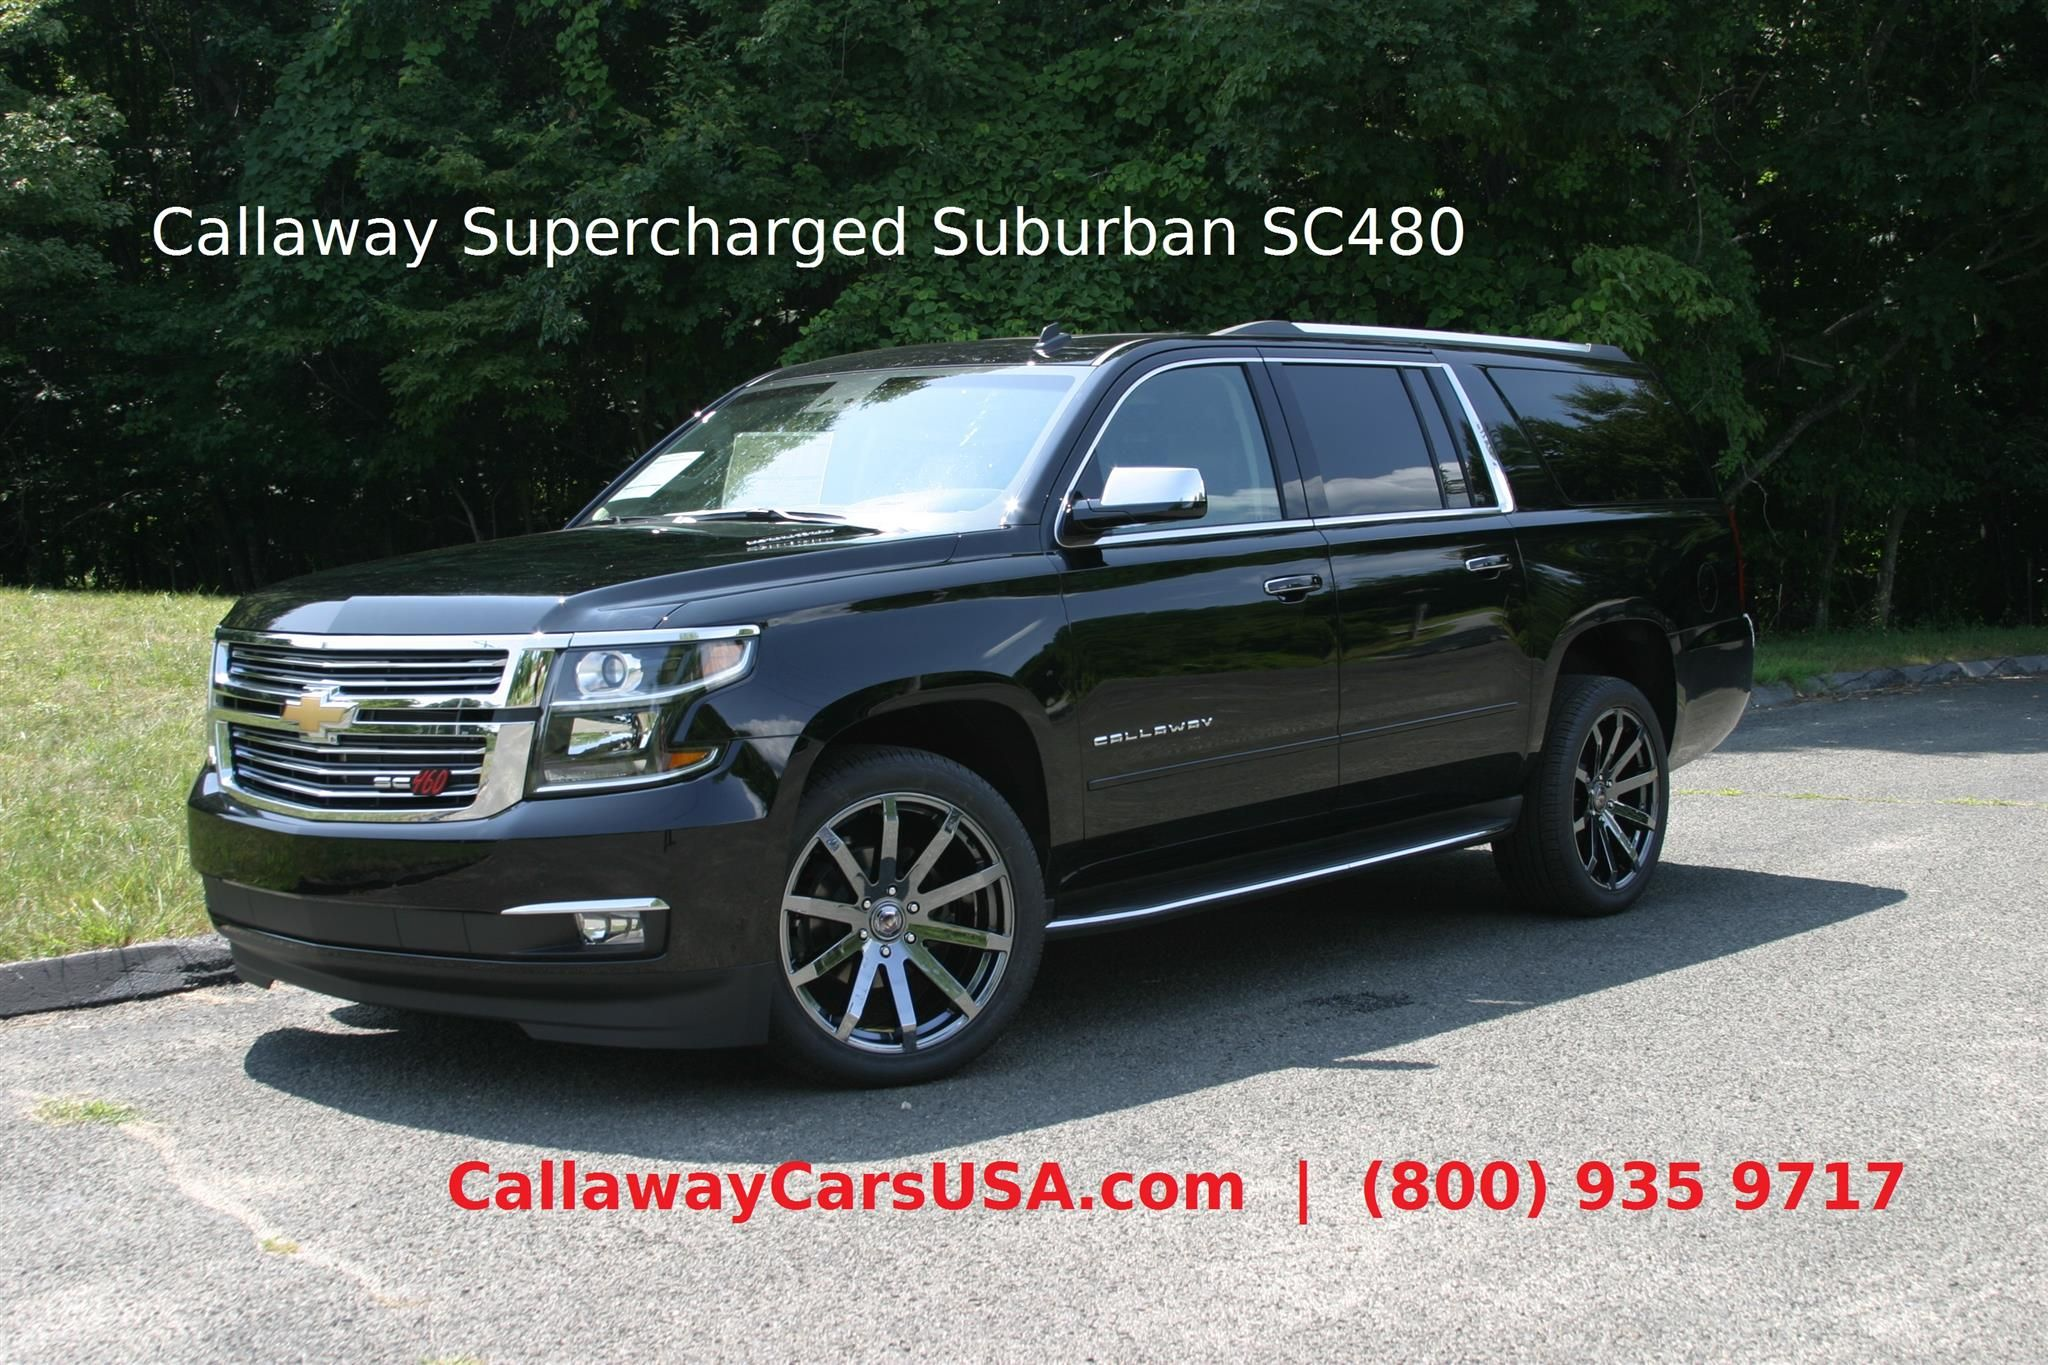 Callawaycarsusa Sells Supercharged Chevrolet Suburban Sc480 Which